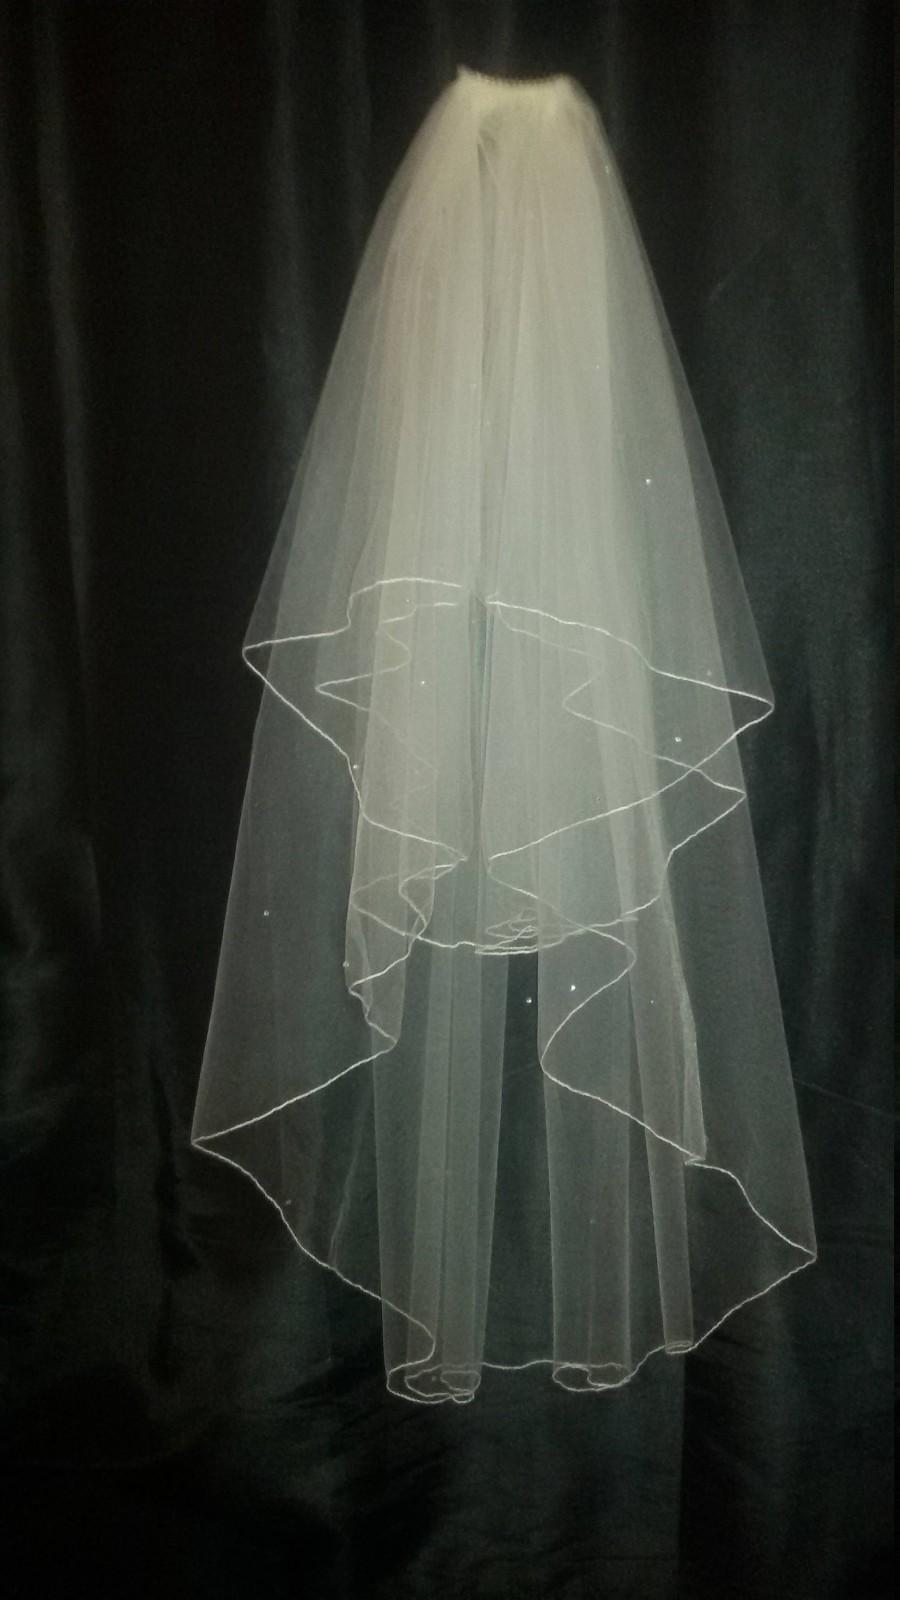 "Wedding - Diamante Rhinestone Ivory wedding veil 30"" / 42"" Fingertip length with  cut or pencil edged. Full circle veil.  2 tiers  FREE UK POSTAGE"